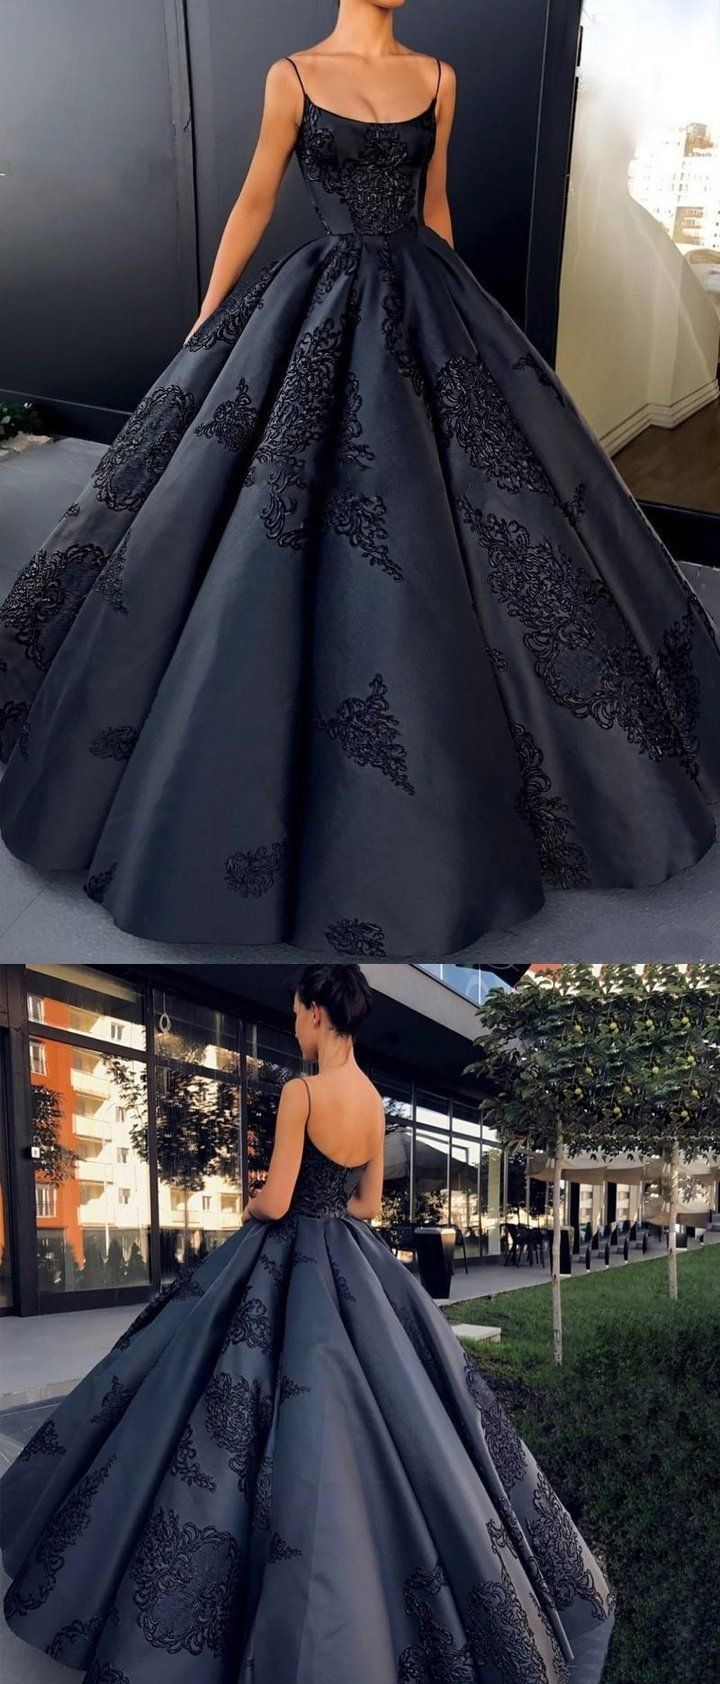 Spaghetti straps modest long best sale formal prom dress ball gown